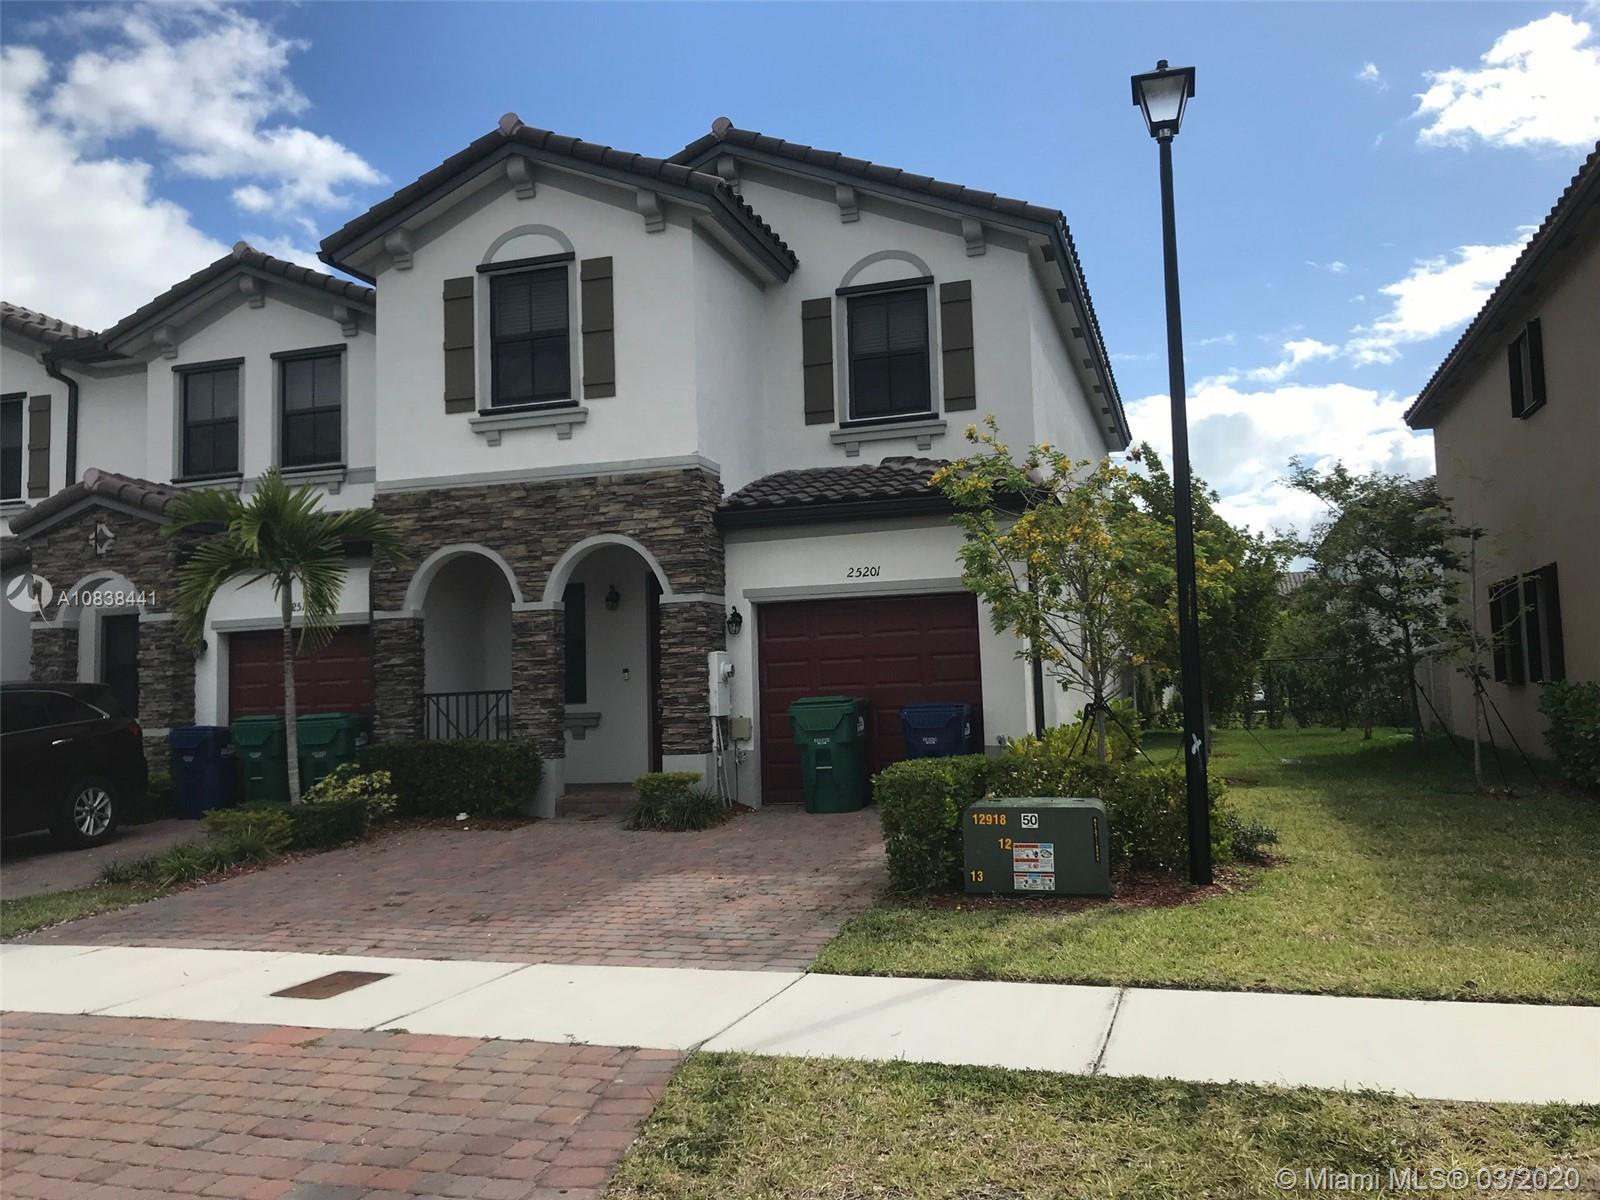 25201 SW 114th Ct Property Photo - Homestead, FL real estate listing